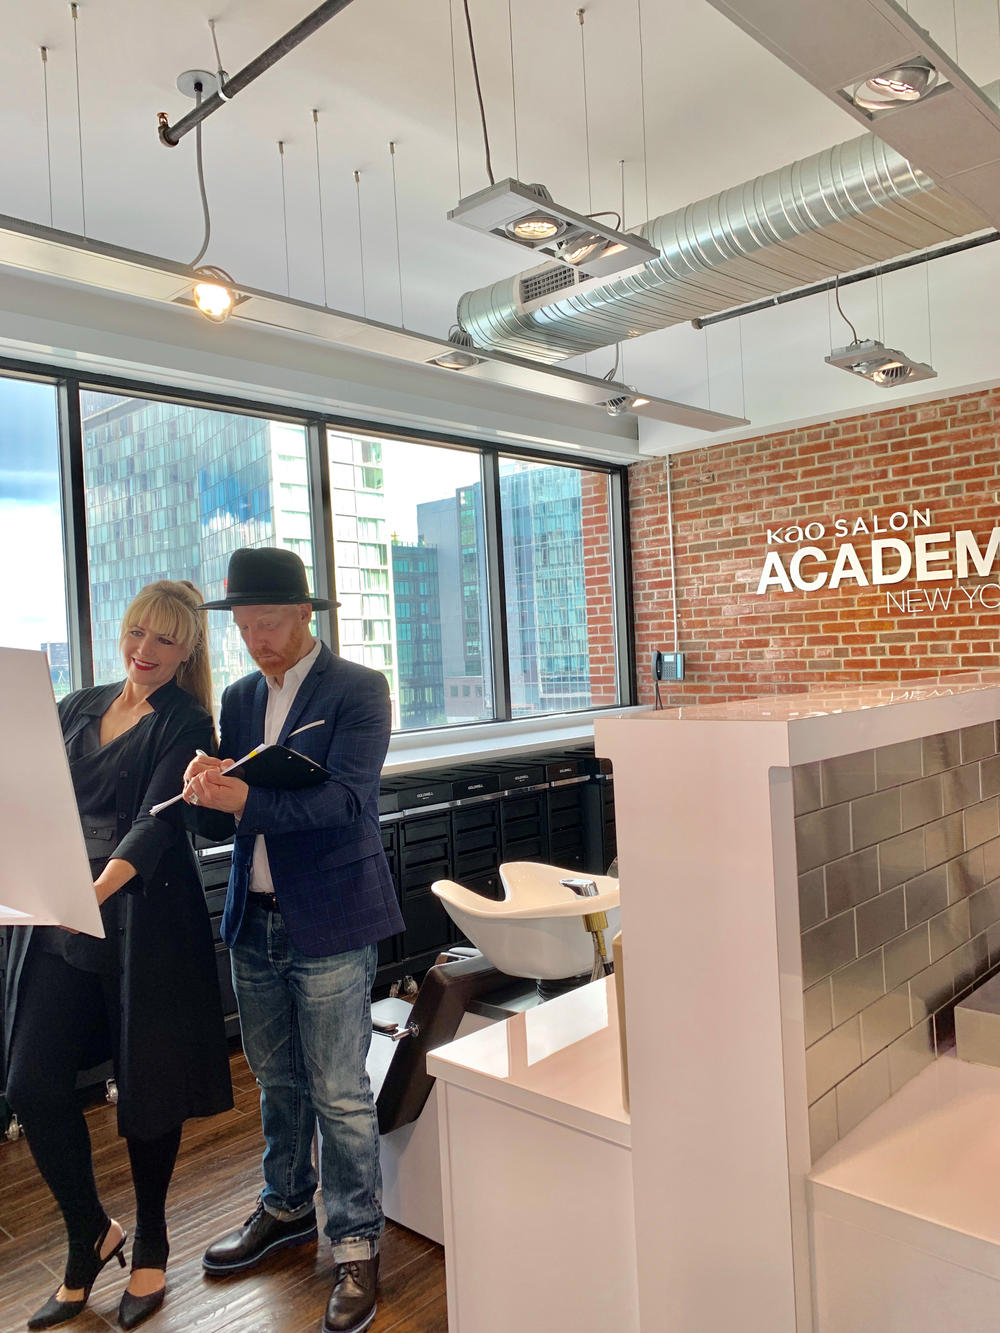 <p>MODERN Beauty and Fashion Director Maggie Mulhern (@modernmaggie1) and celebrity colorist Jason Backe (@jasonbacke) participated in judging Goldwell's Color Zoom 2019 at the Kao Academy in NYC.</p>